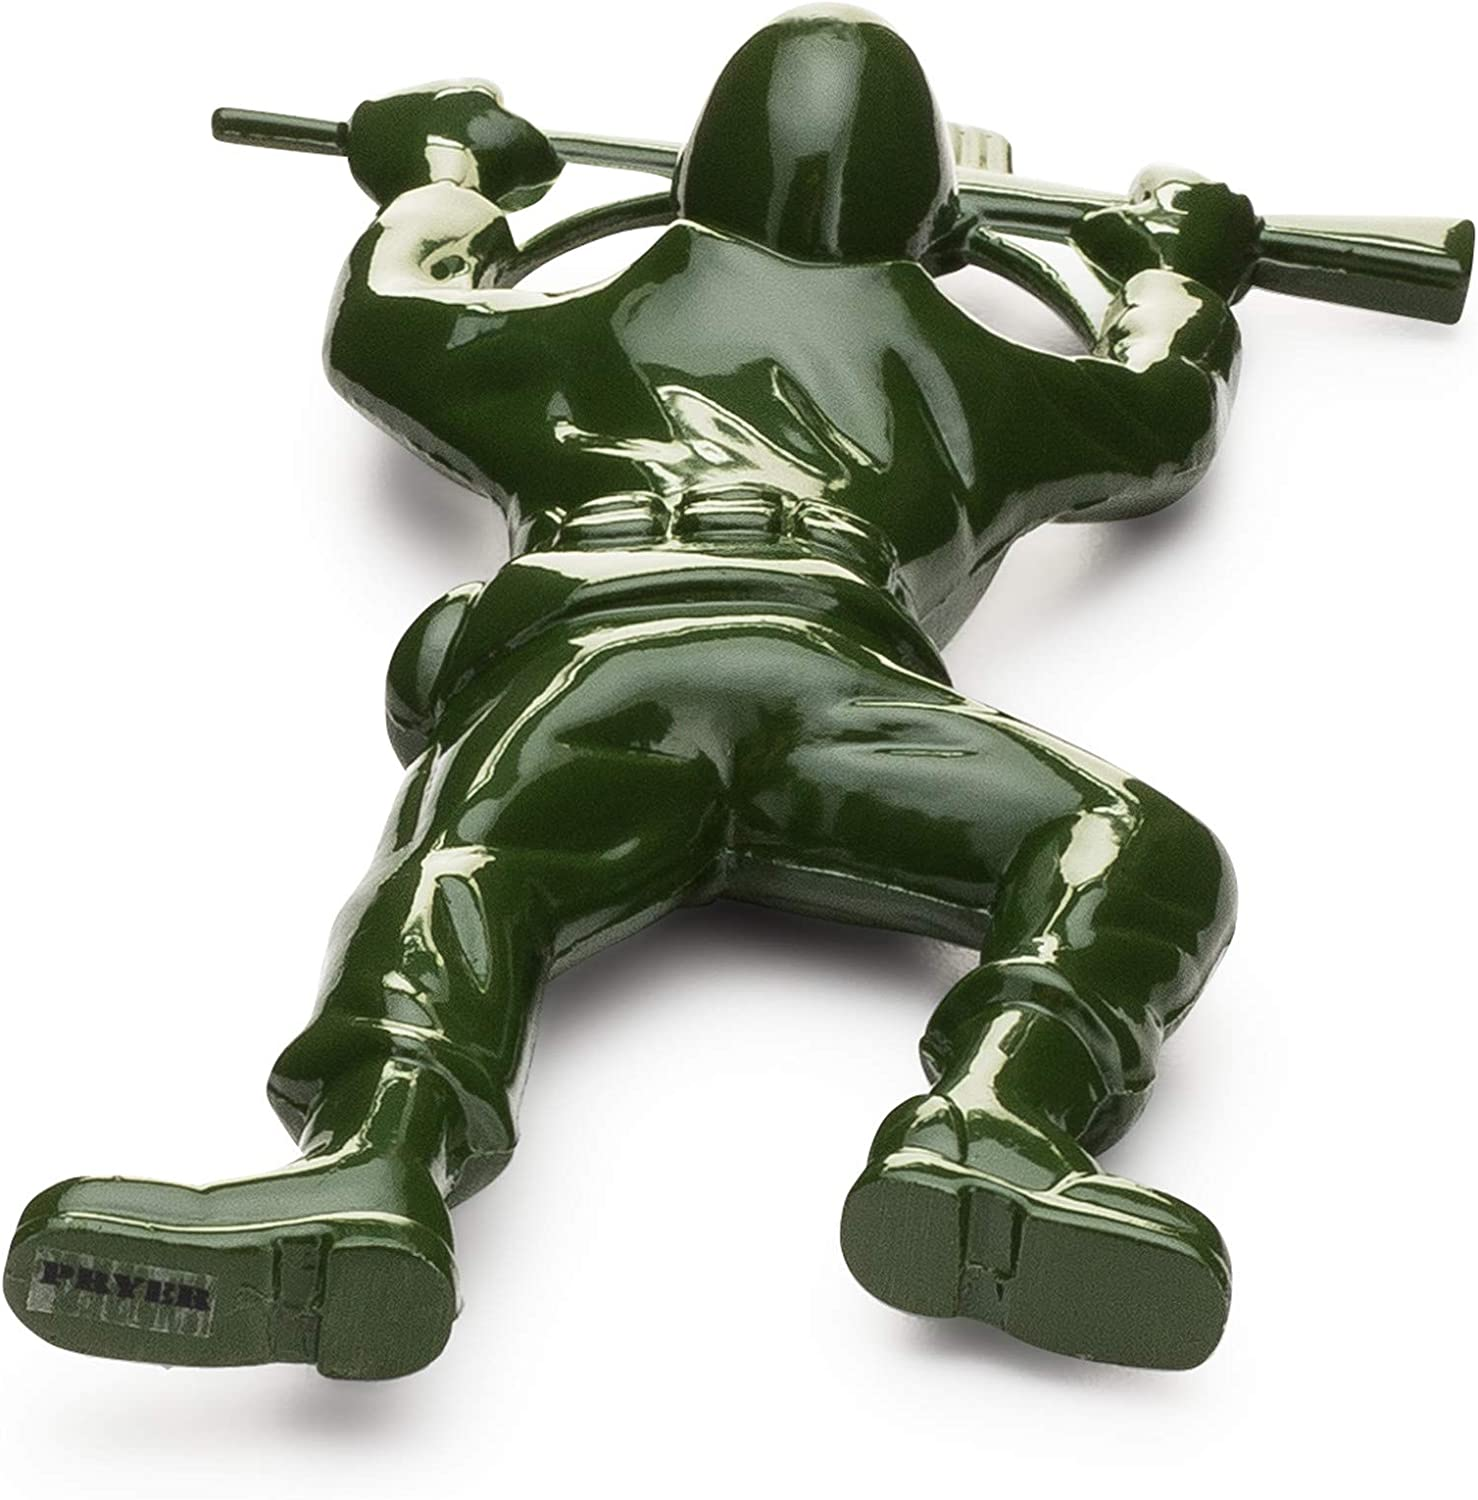 Down the Pike Sgt Pryer Green Army Man Bottle Opener Cool Beer Gifts Fun Unique Gifts For Men